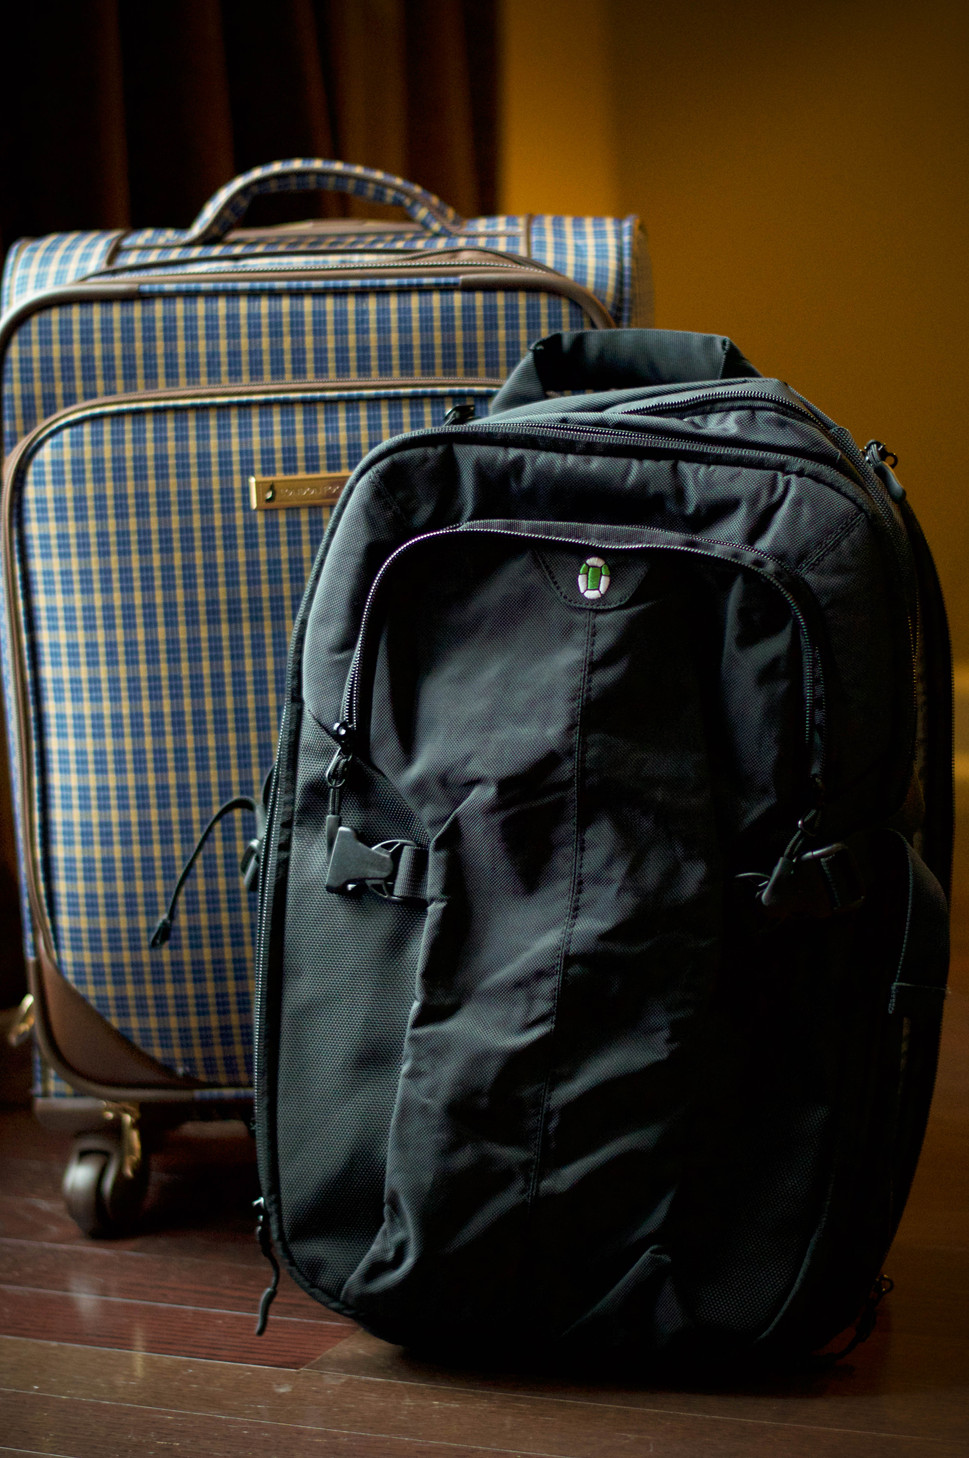 Packing Your Life in 2 Bags for 6 months